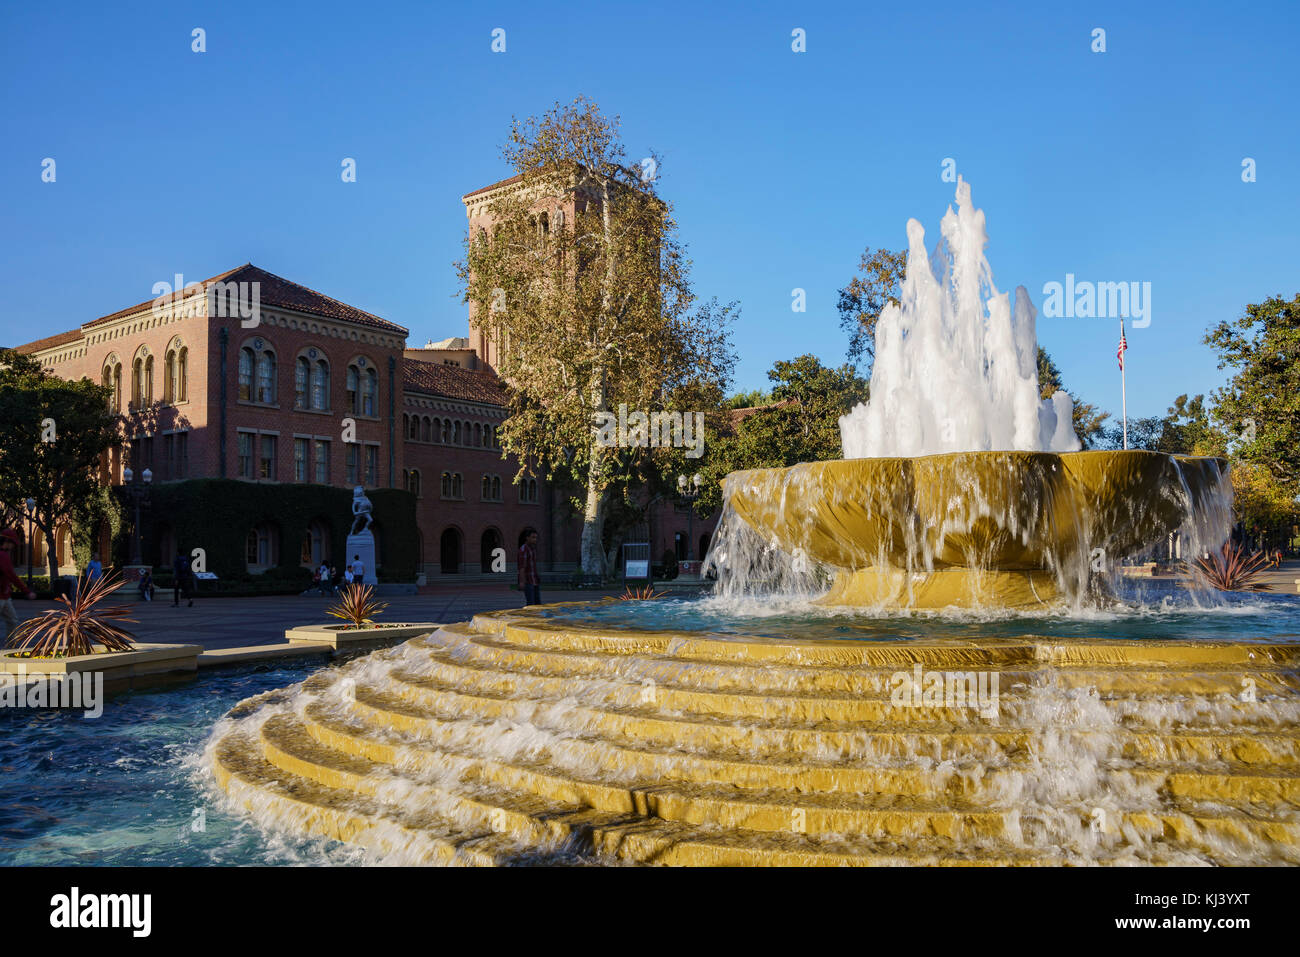 Los Angeles, NOV 19: Bovard Aministration and fountain on NOV 19, 2017 at Los Angeles, California, United States - Stock Image